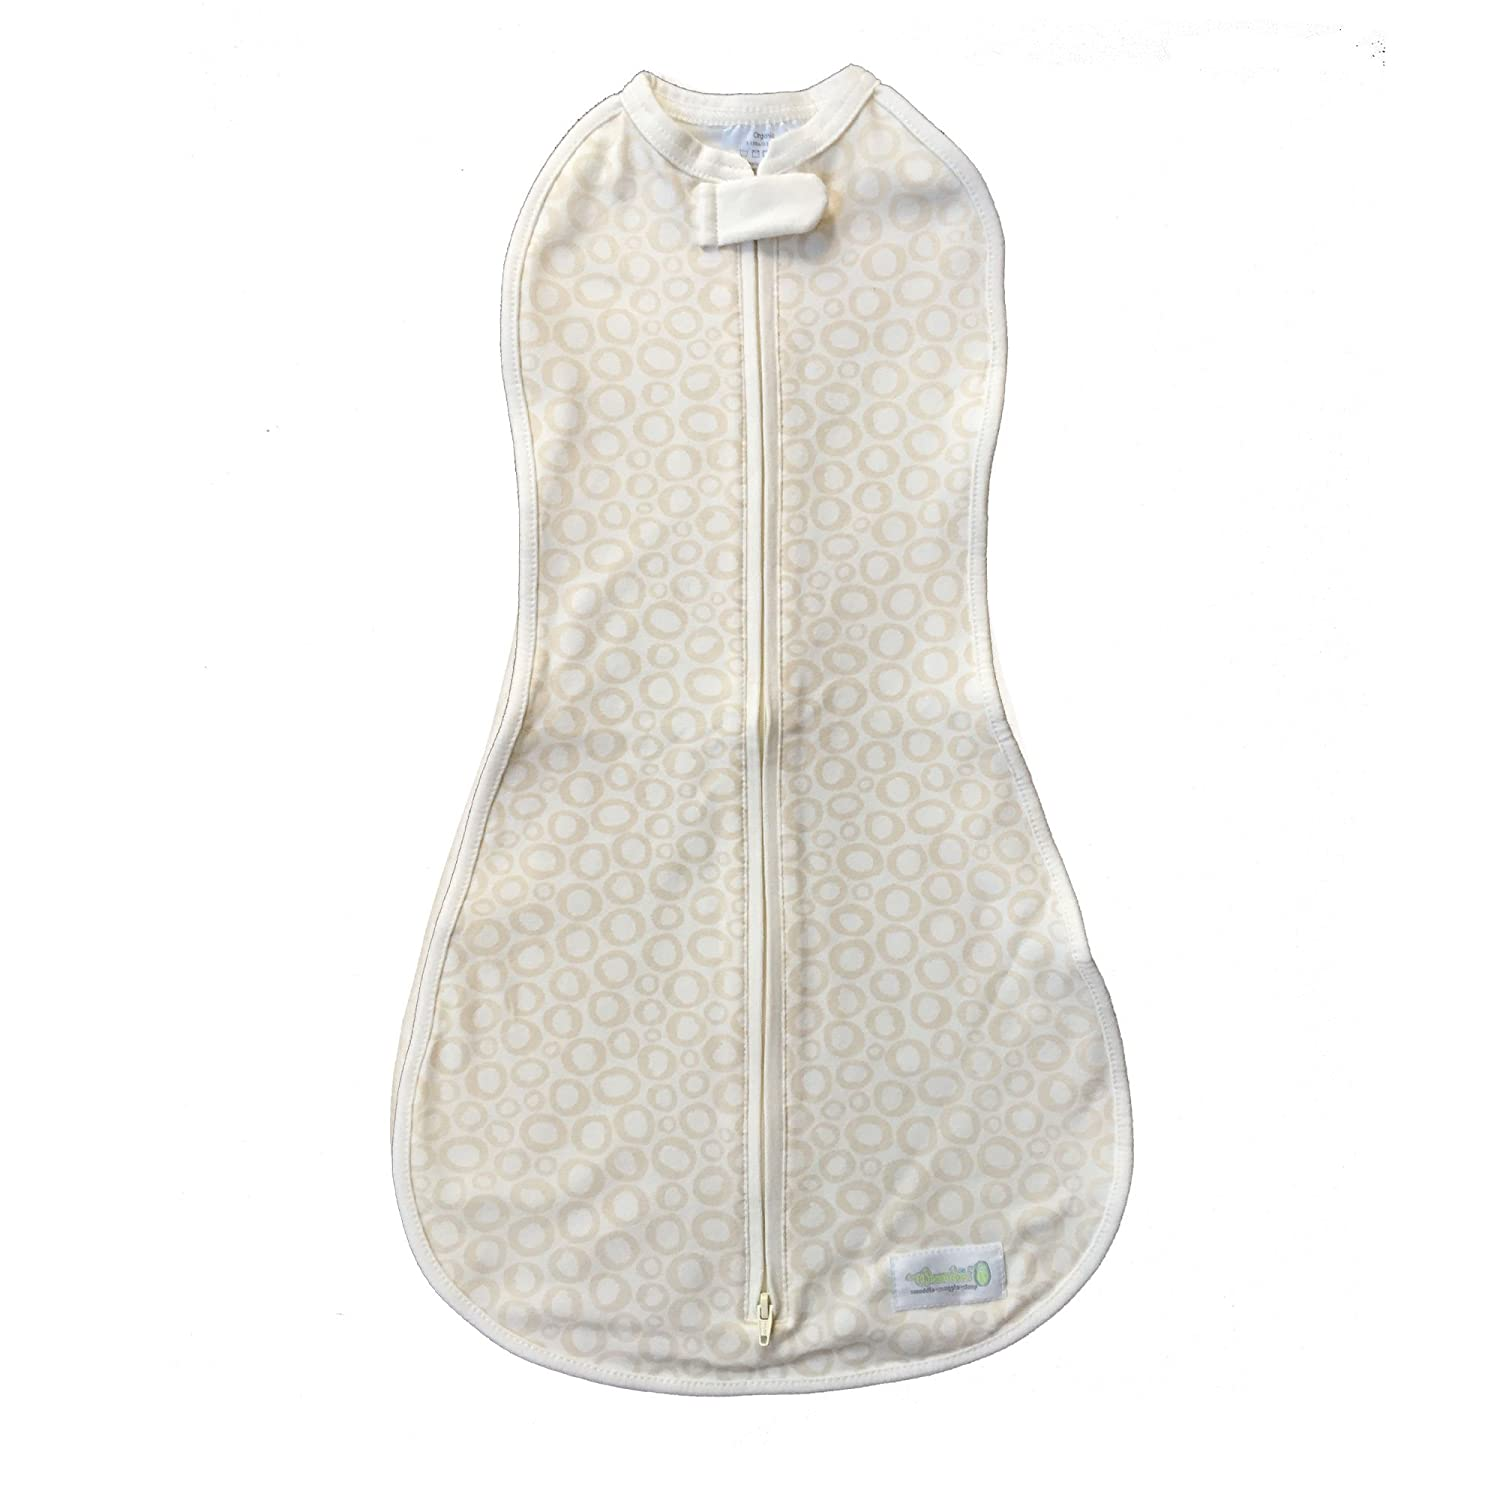 Woombie Organic Baby Cocoon Swaddle -Big Baby 3-6 Months-Tan O's 1650